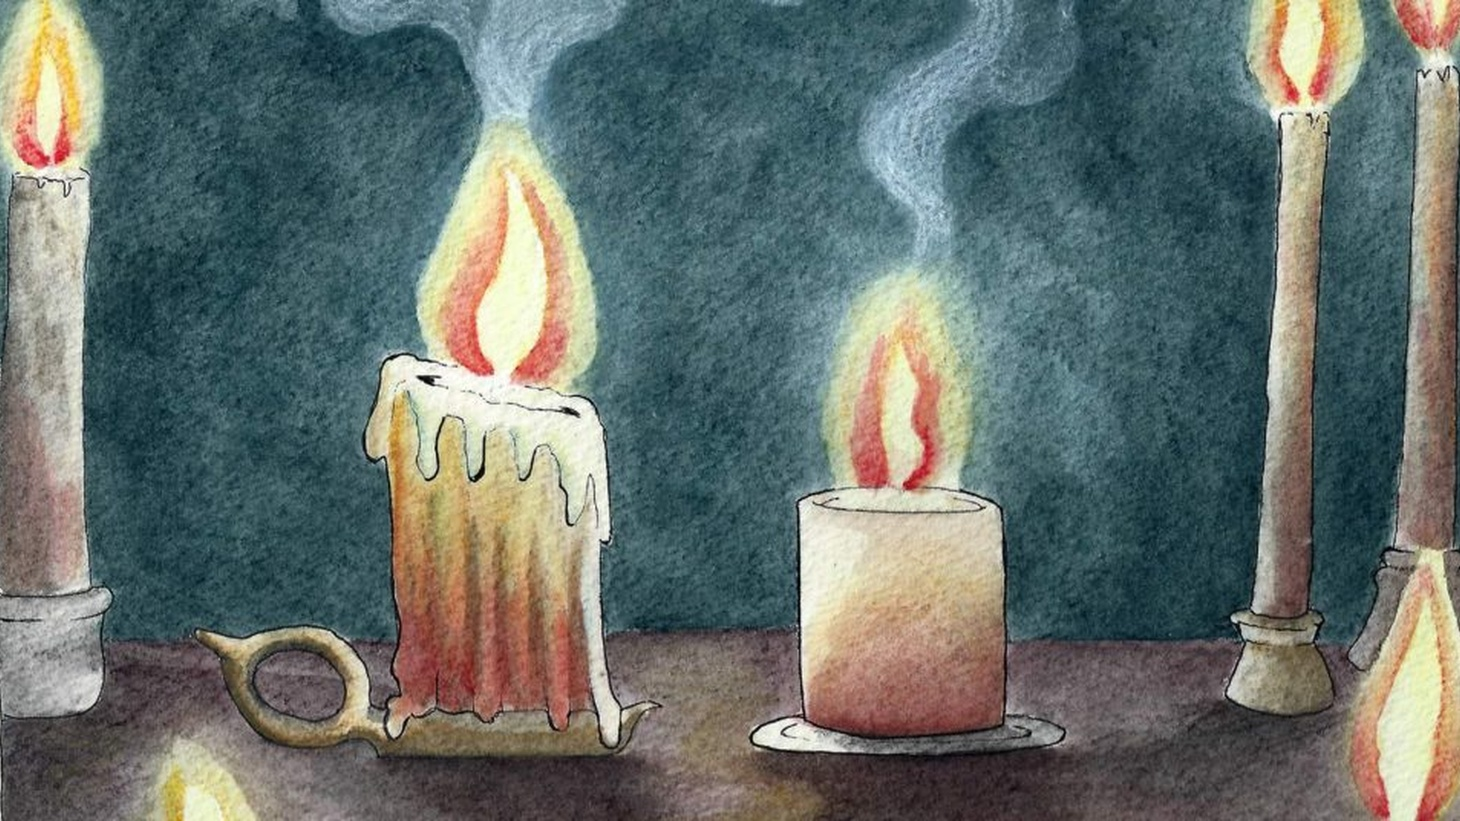 Candles were a lifeline until they became merely ornamental. So, how do the candles feel about this?